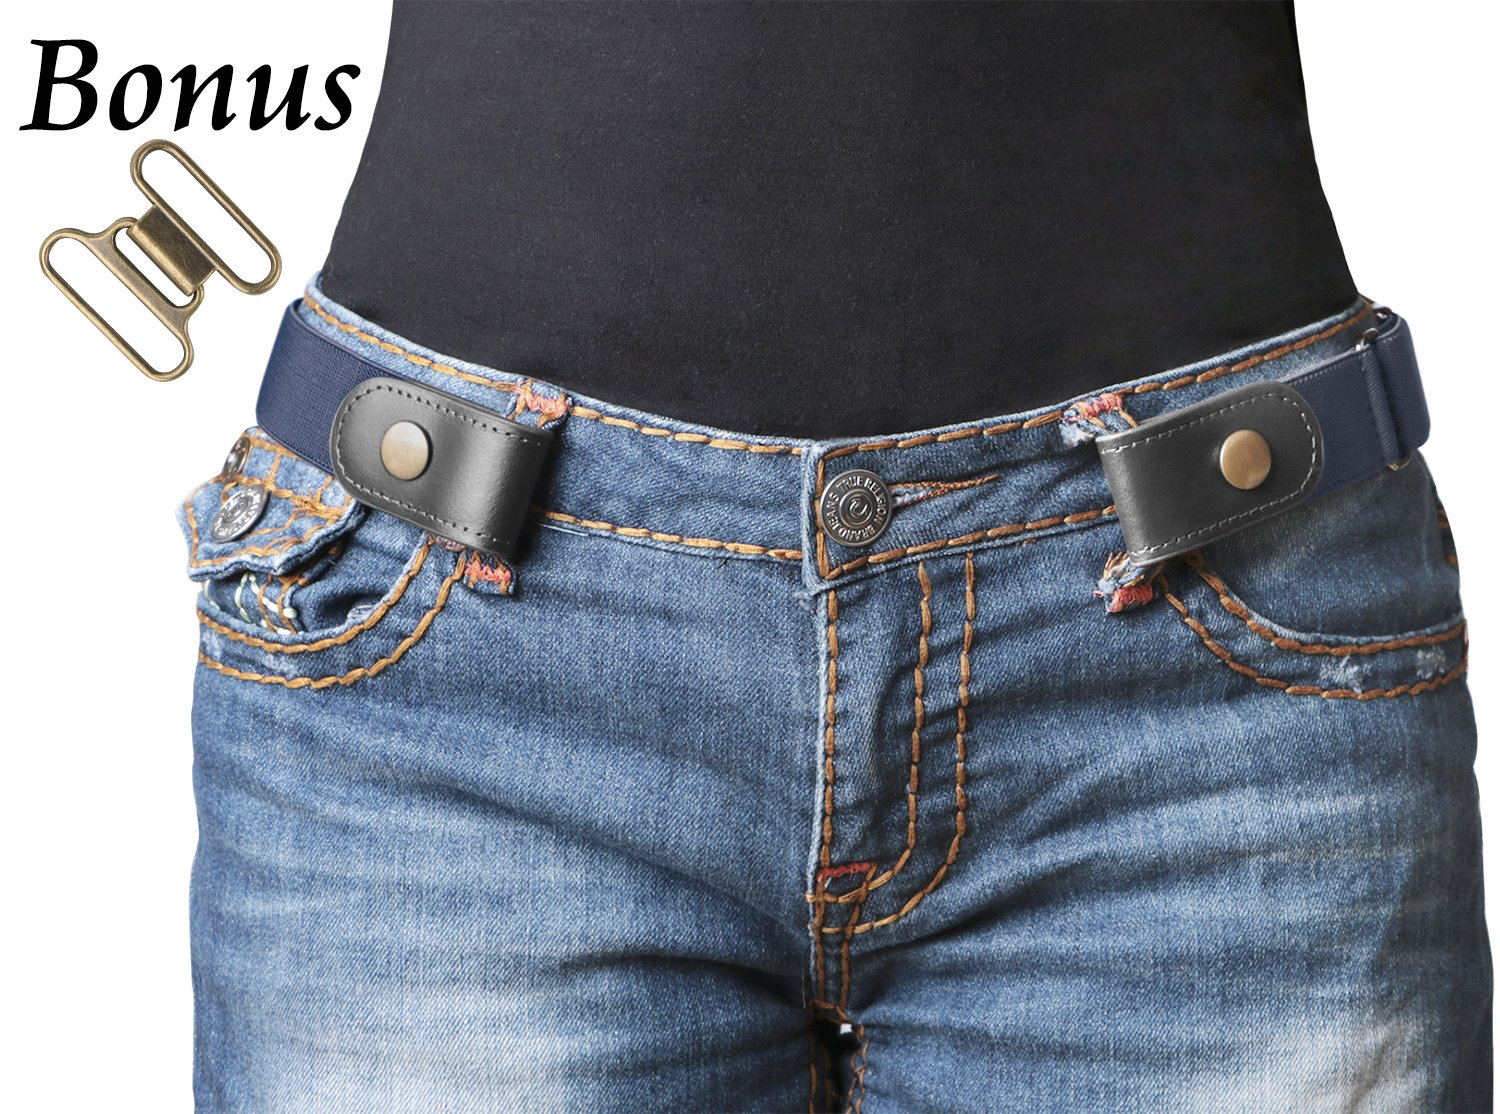 No Buckle Stretch Belt For Women/Men Elastic Waist Belt Up to 48'' for Jeans Pants